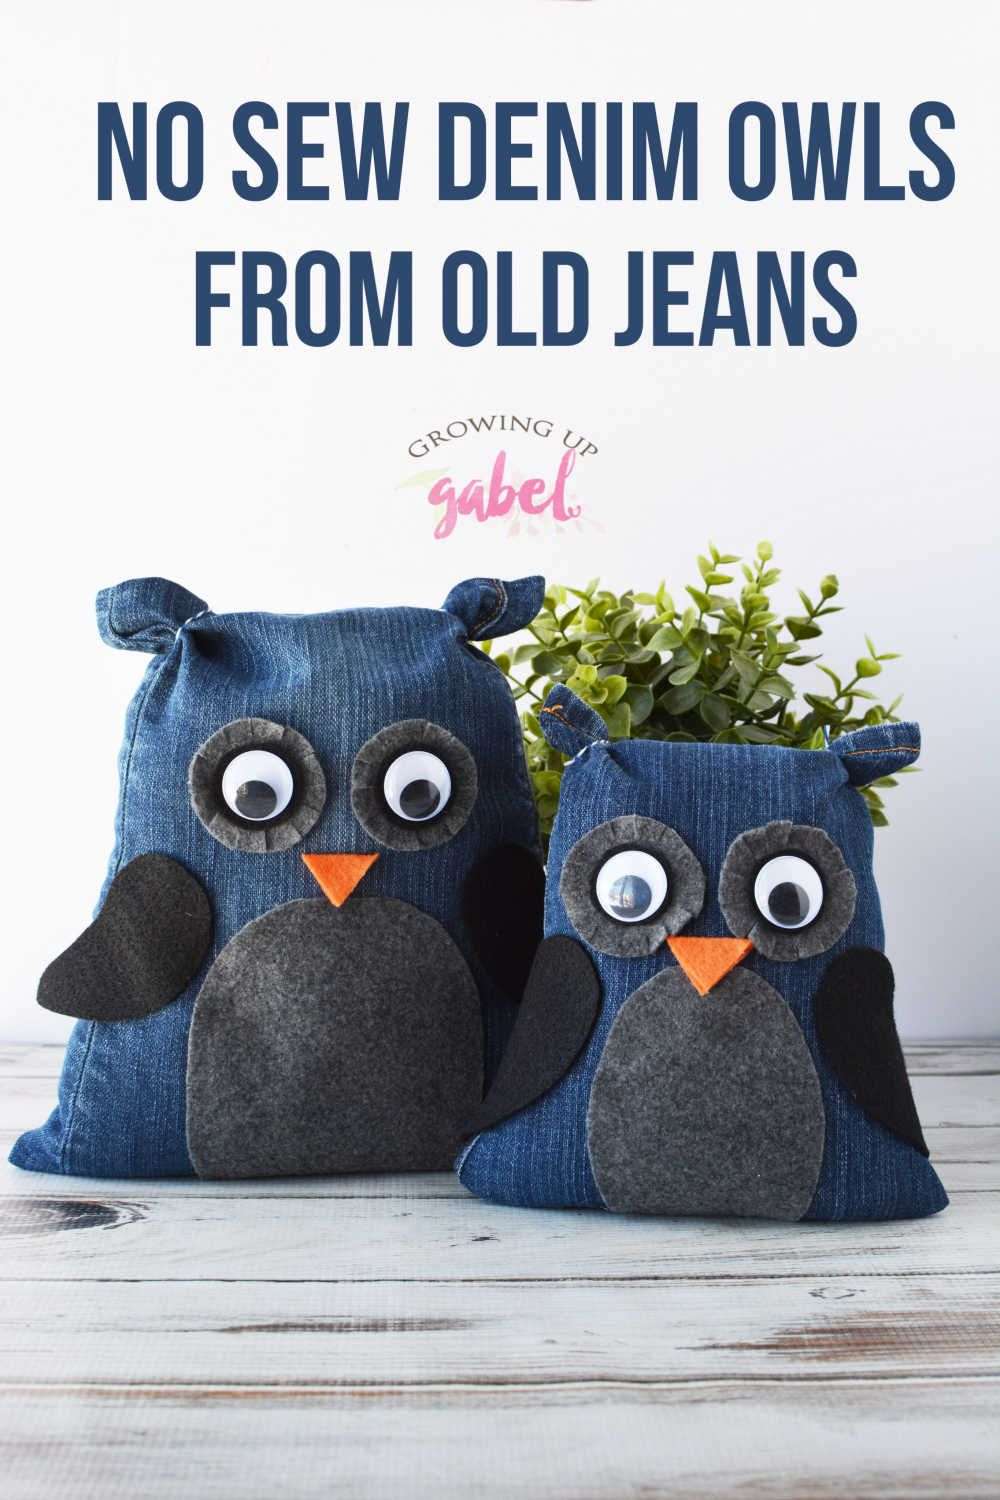 Make your own stuffed animal owls with an old pair of jeans. This easy no sew craft is a great recycled craft idea. Easy to make with kids! #upycyle #nosewcraft #nosew #oldjeans #craftideas #recycledcrafts